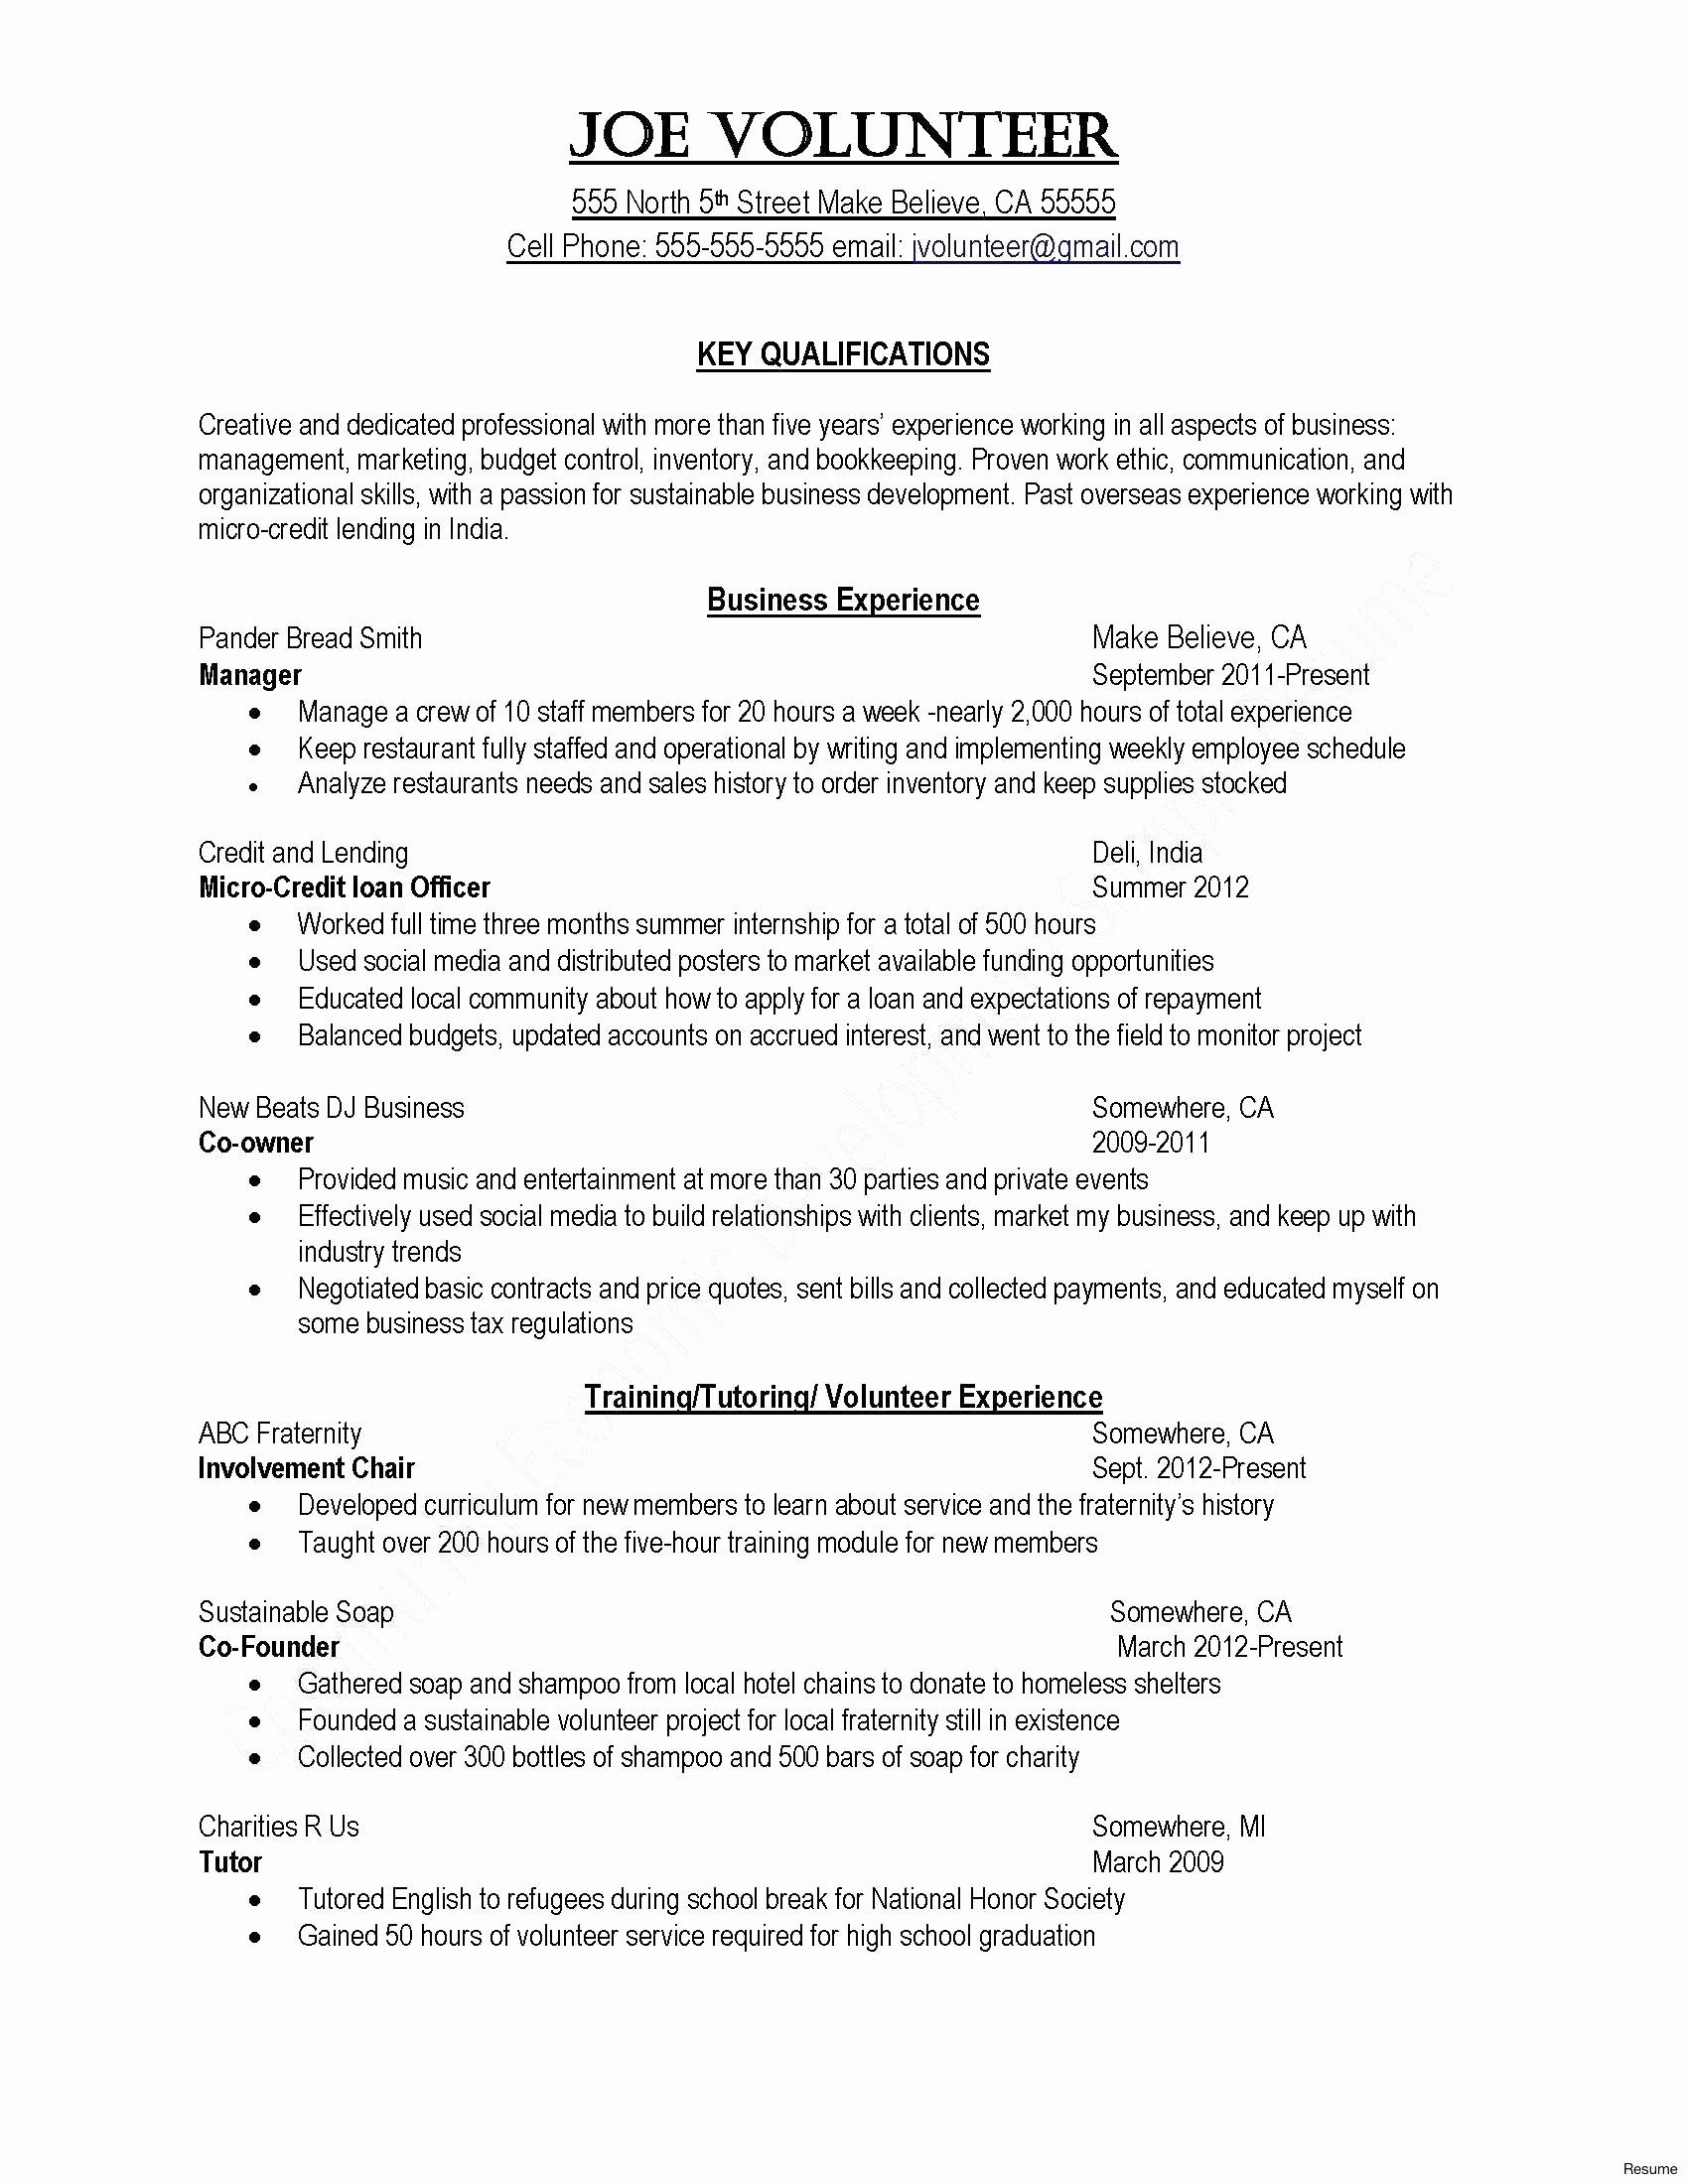 Free Resume Templates For Over 50 Resume Examples Marketing Plan Template Event Planning Quotes Business Plan Template